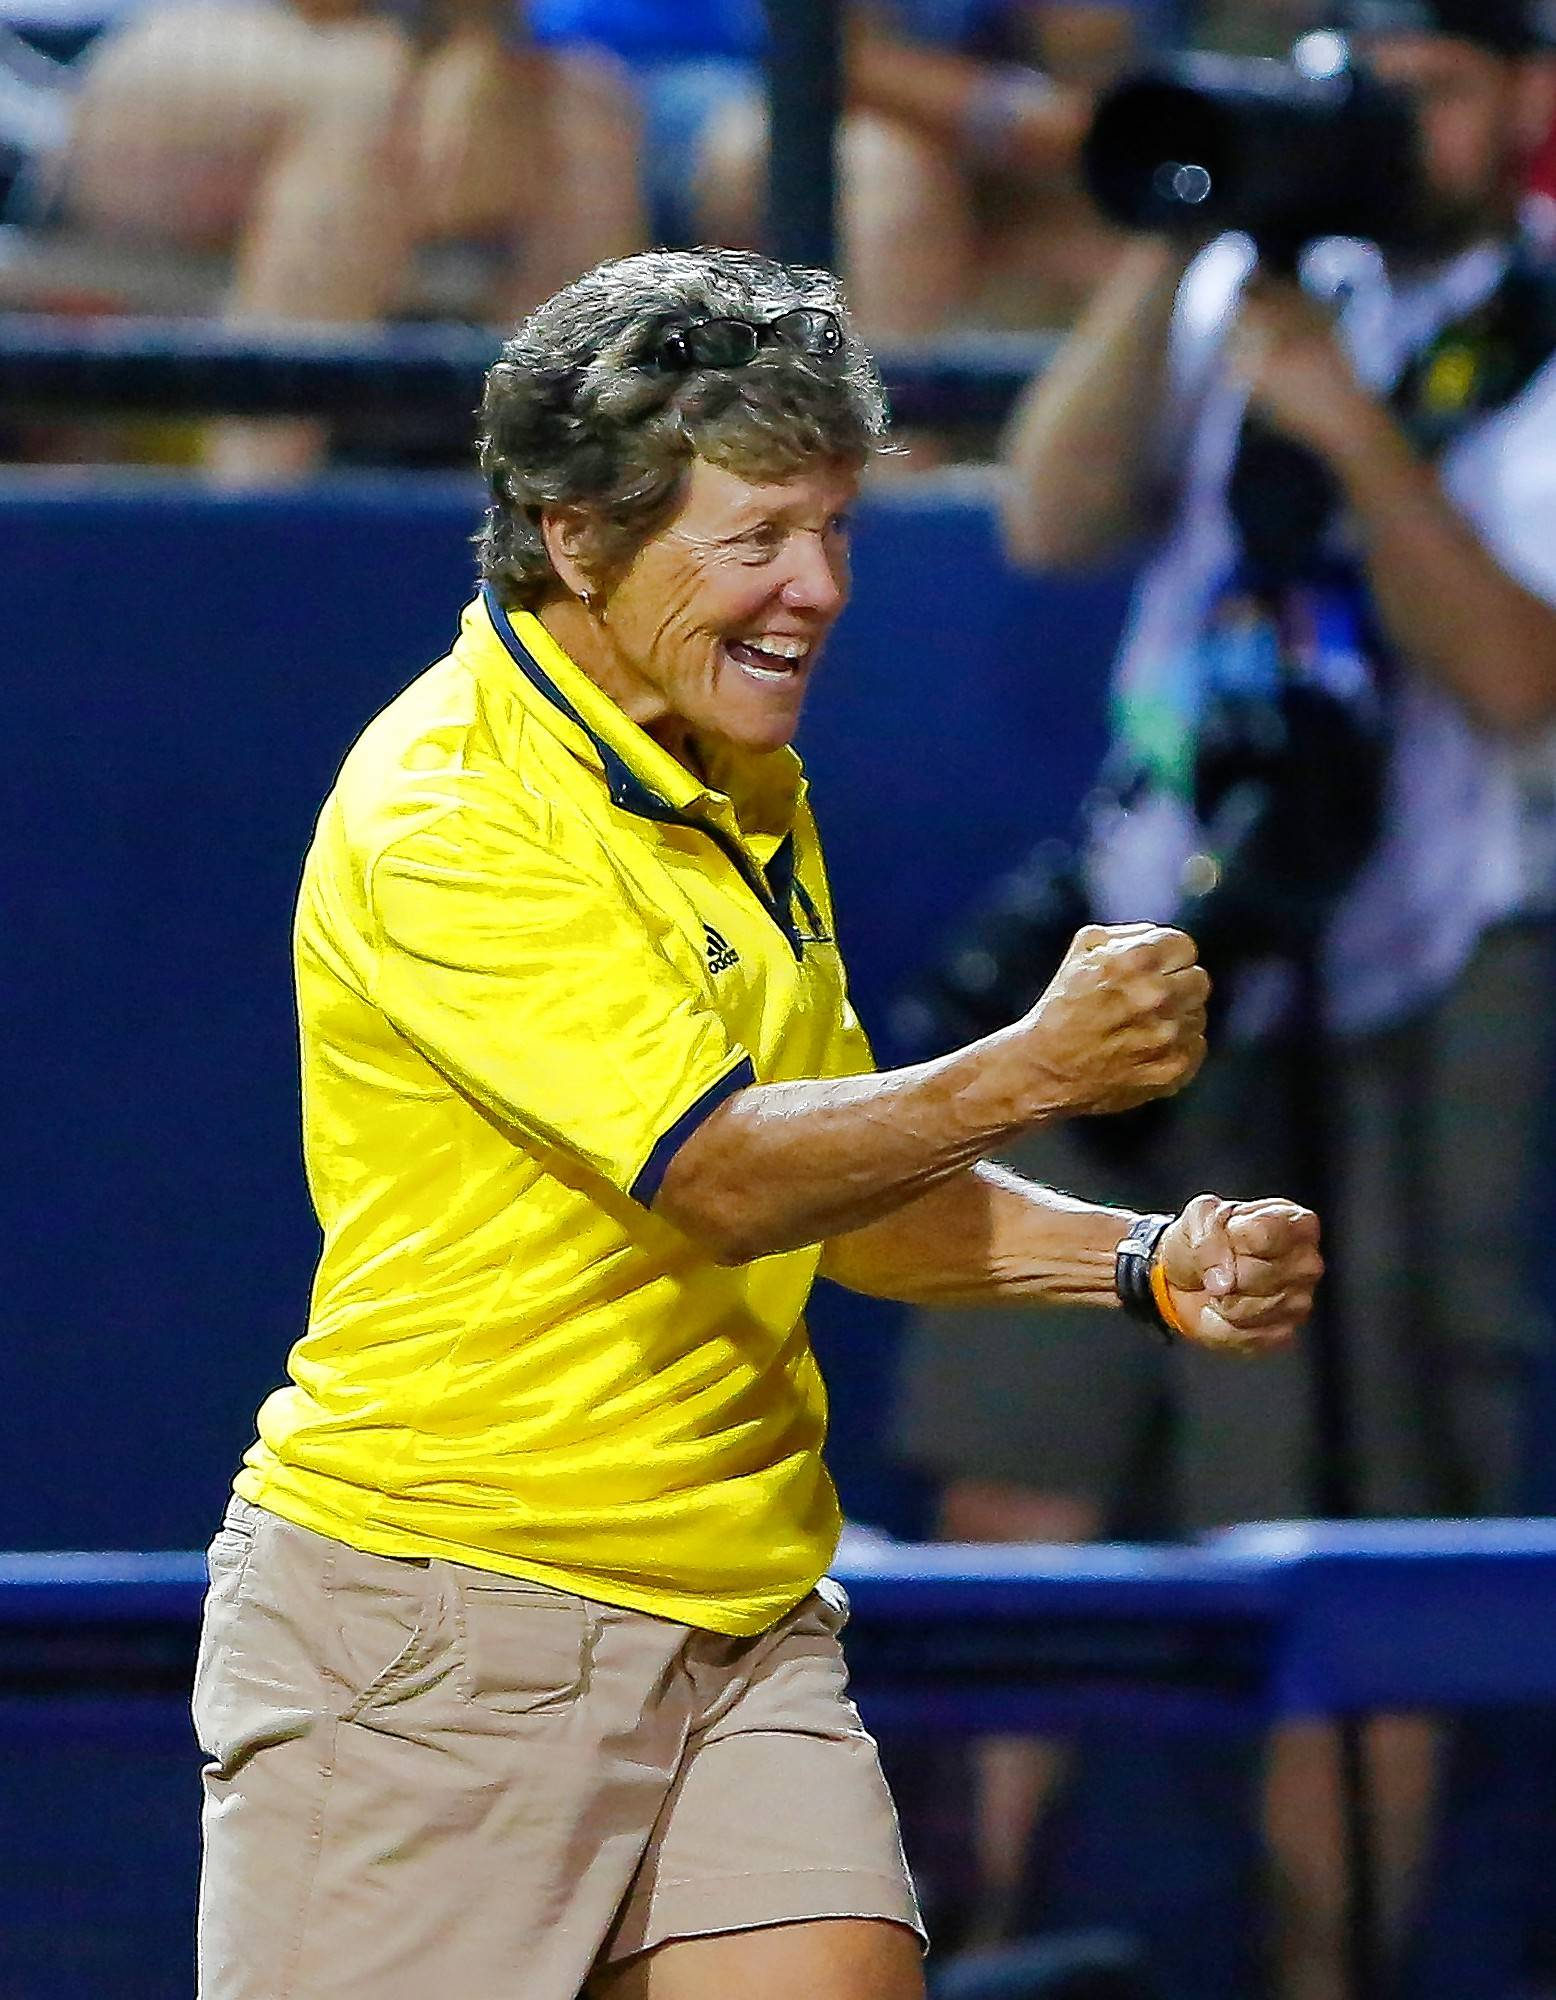 A high school cheerleader when the landmark Title IX legislation mandated that schools field sports teams for females, Carol Hutchins later sued Michigan State University to make sure the school adhered to the rules. Now the coach of the University of Michigan's women's softball team, Hutchins has more victories than any other softball coach and is a legend in the softball world.